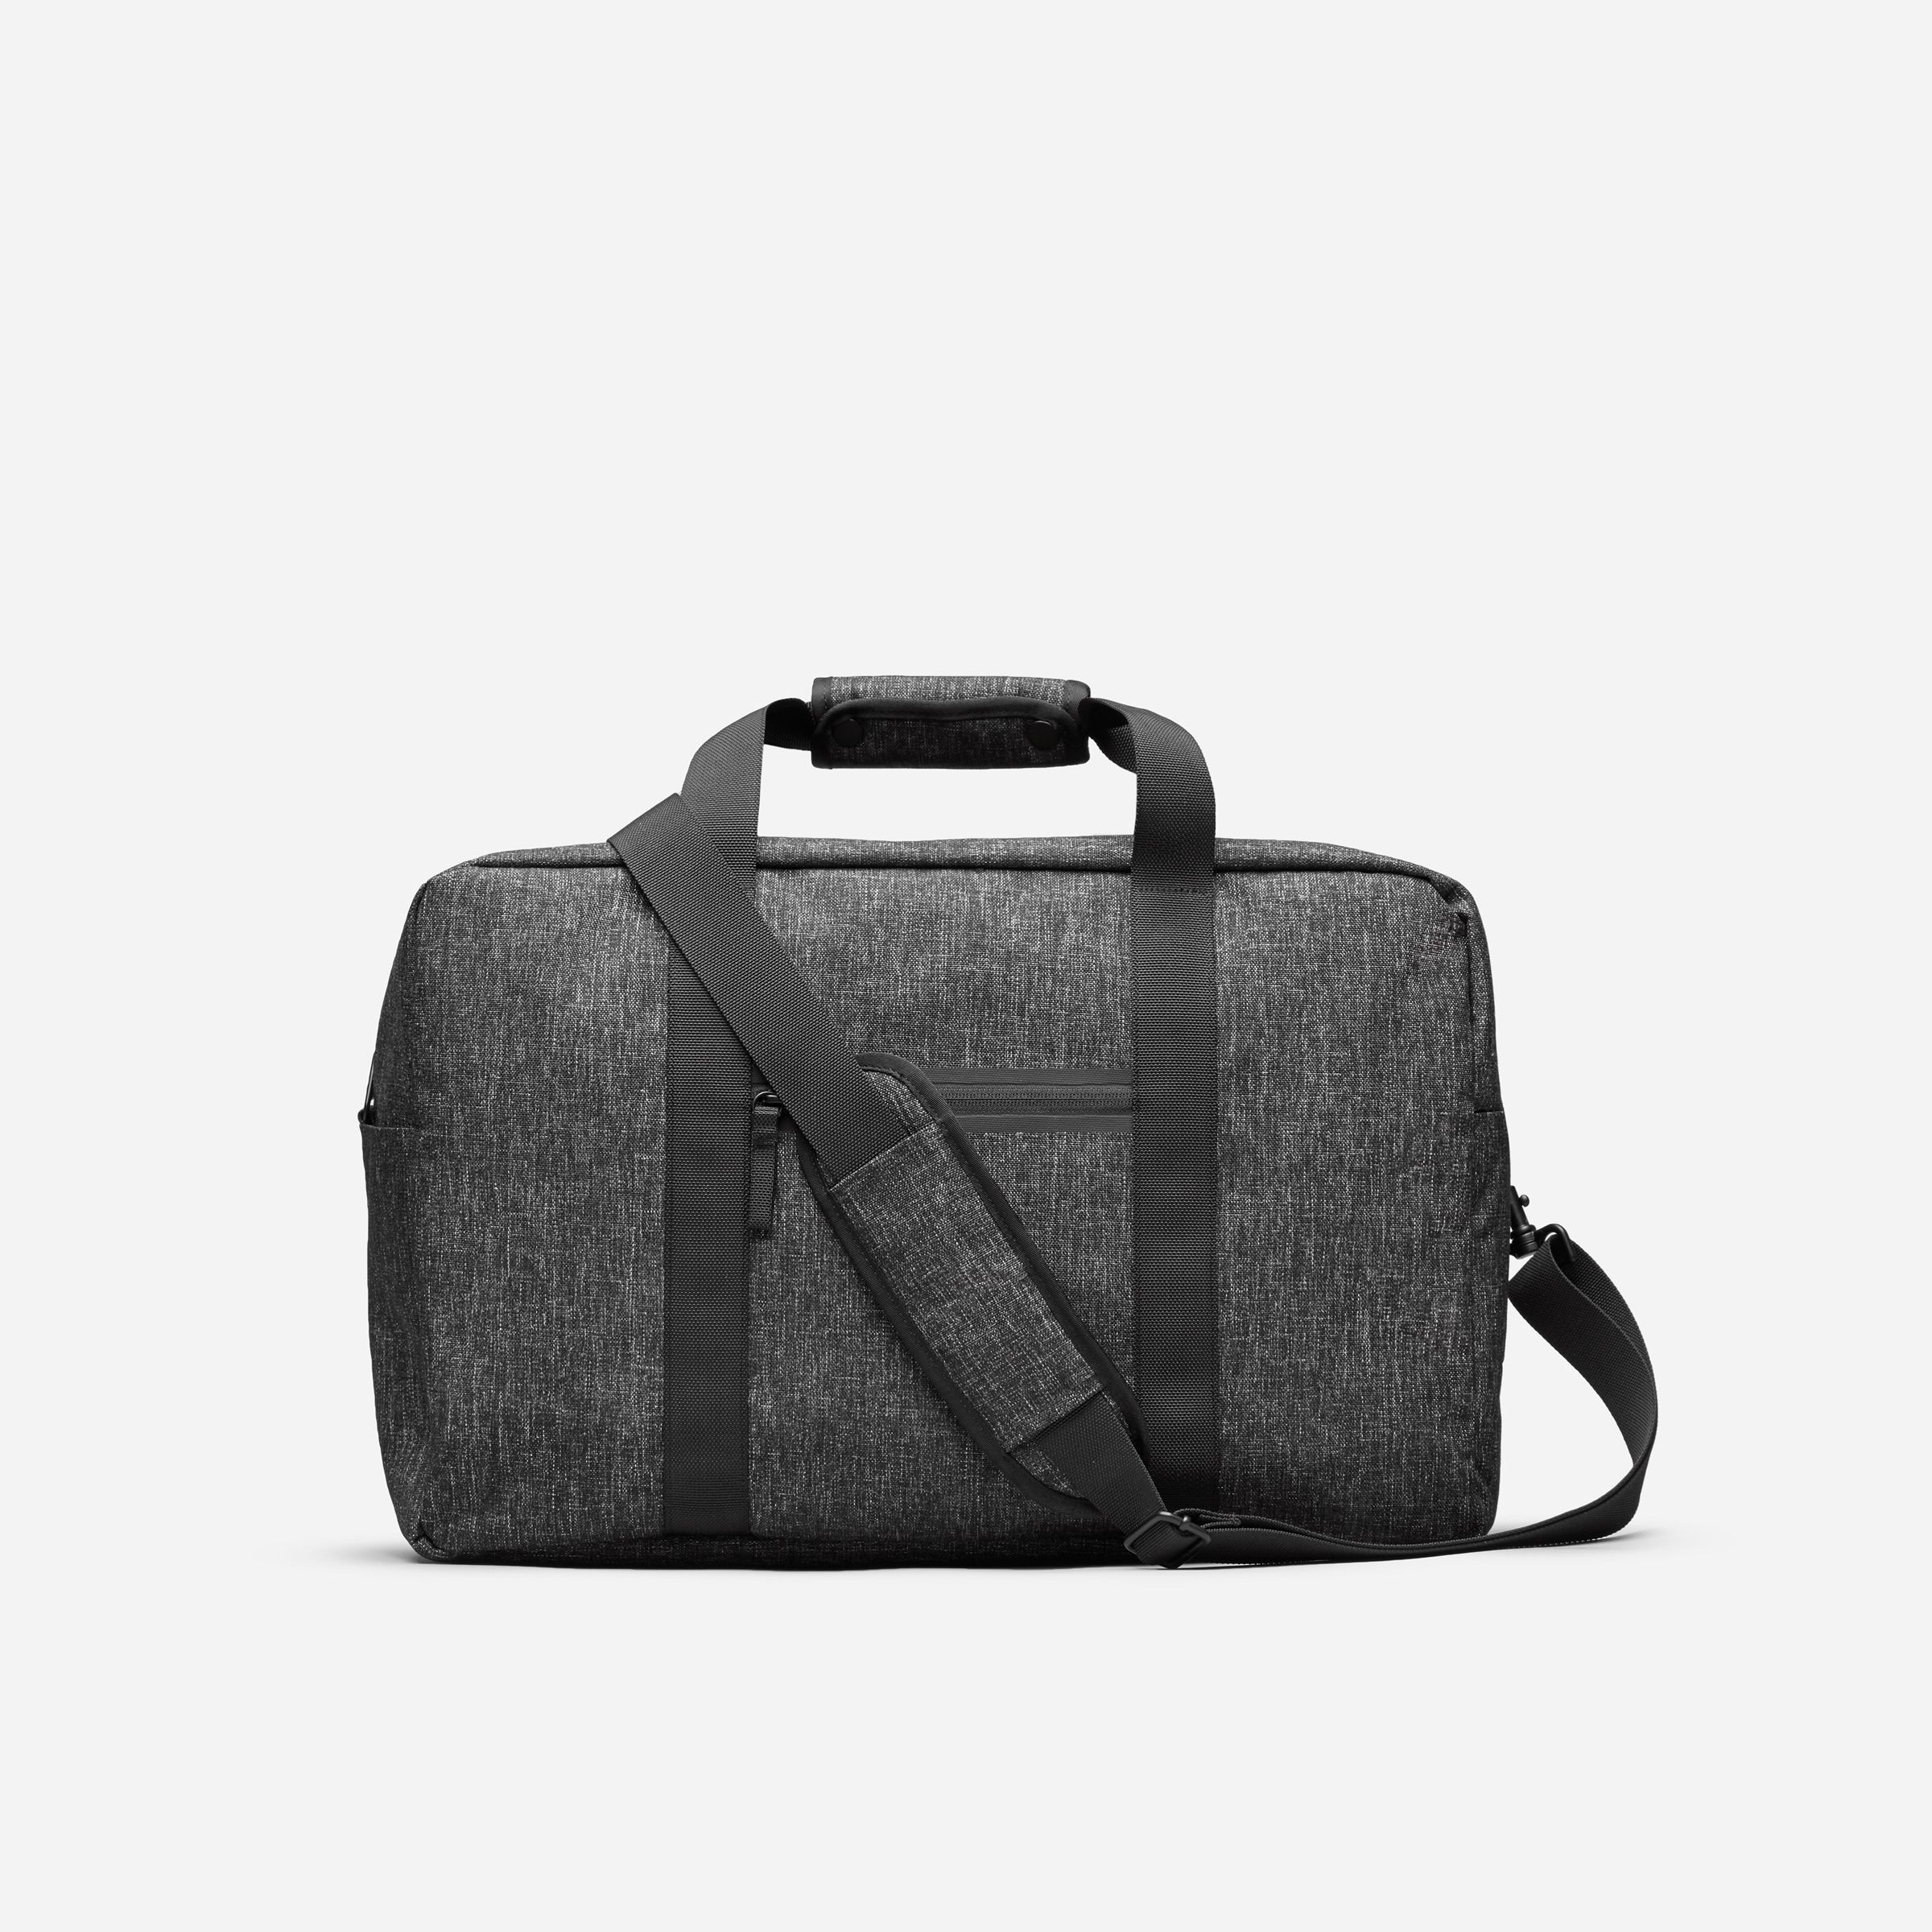 9 Best Gym Bags For Men 2018 — Top Backpacks And Duffle Bags 80abb3c892bc3